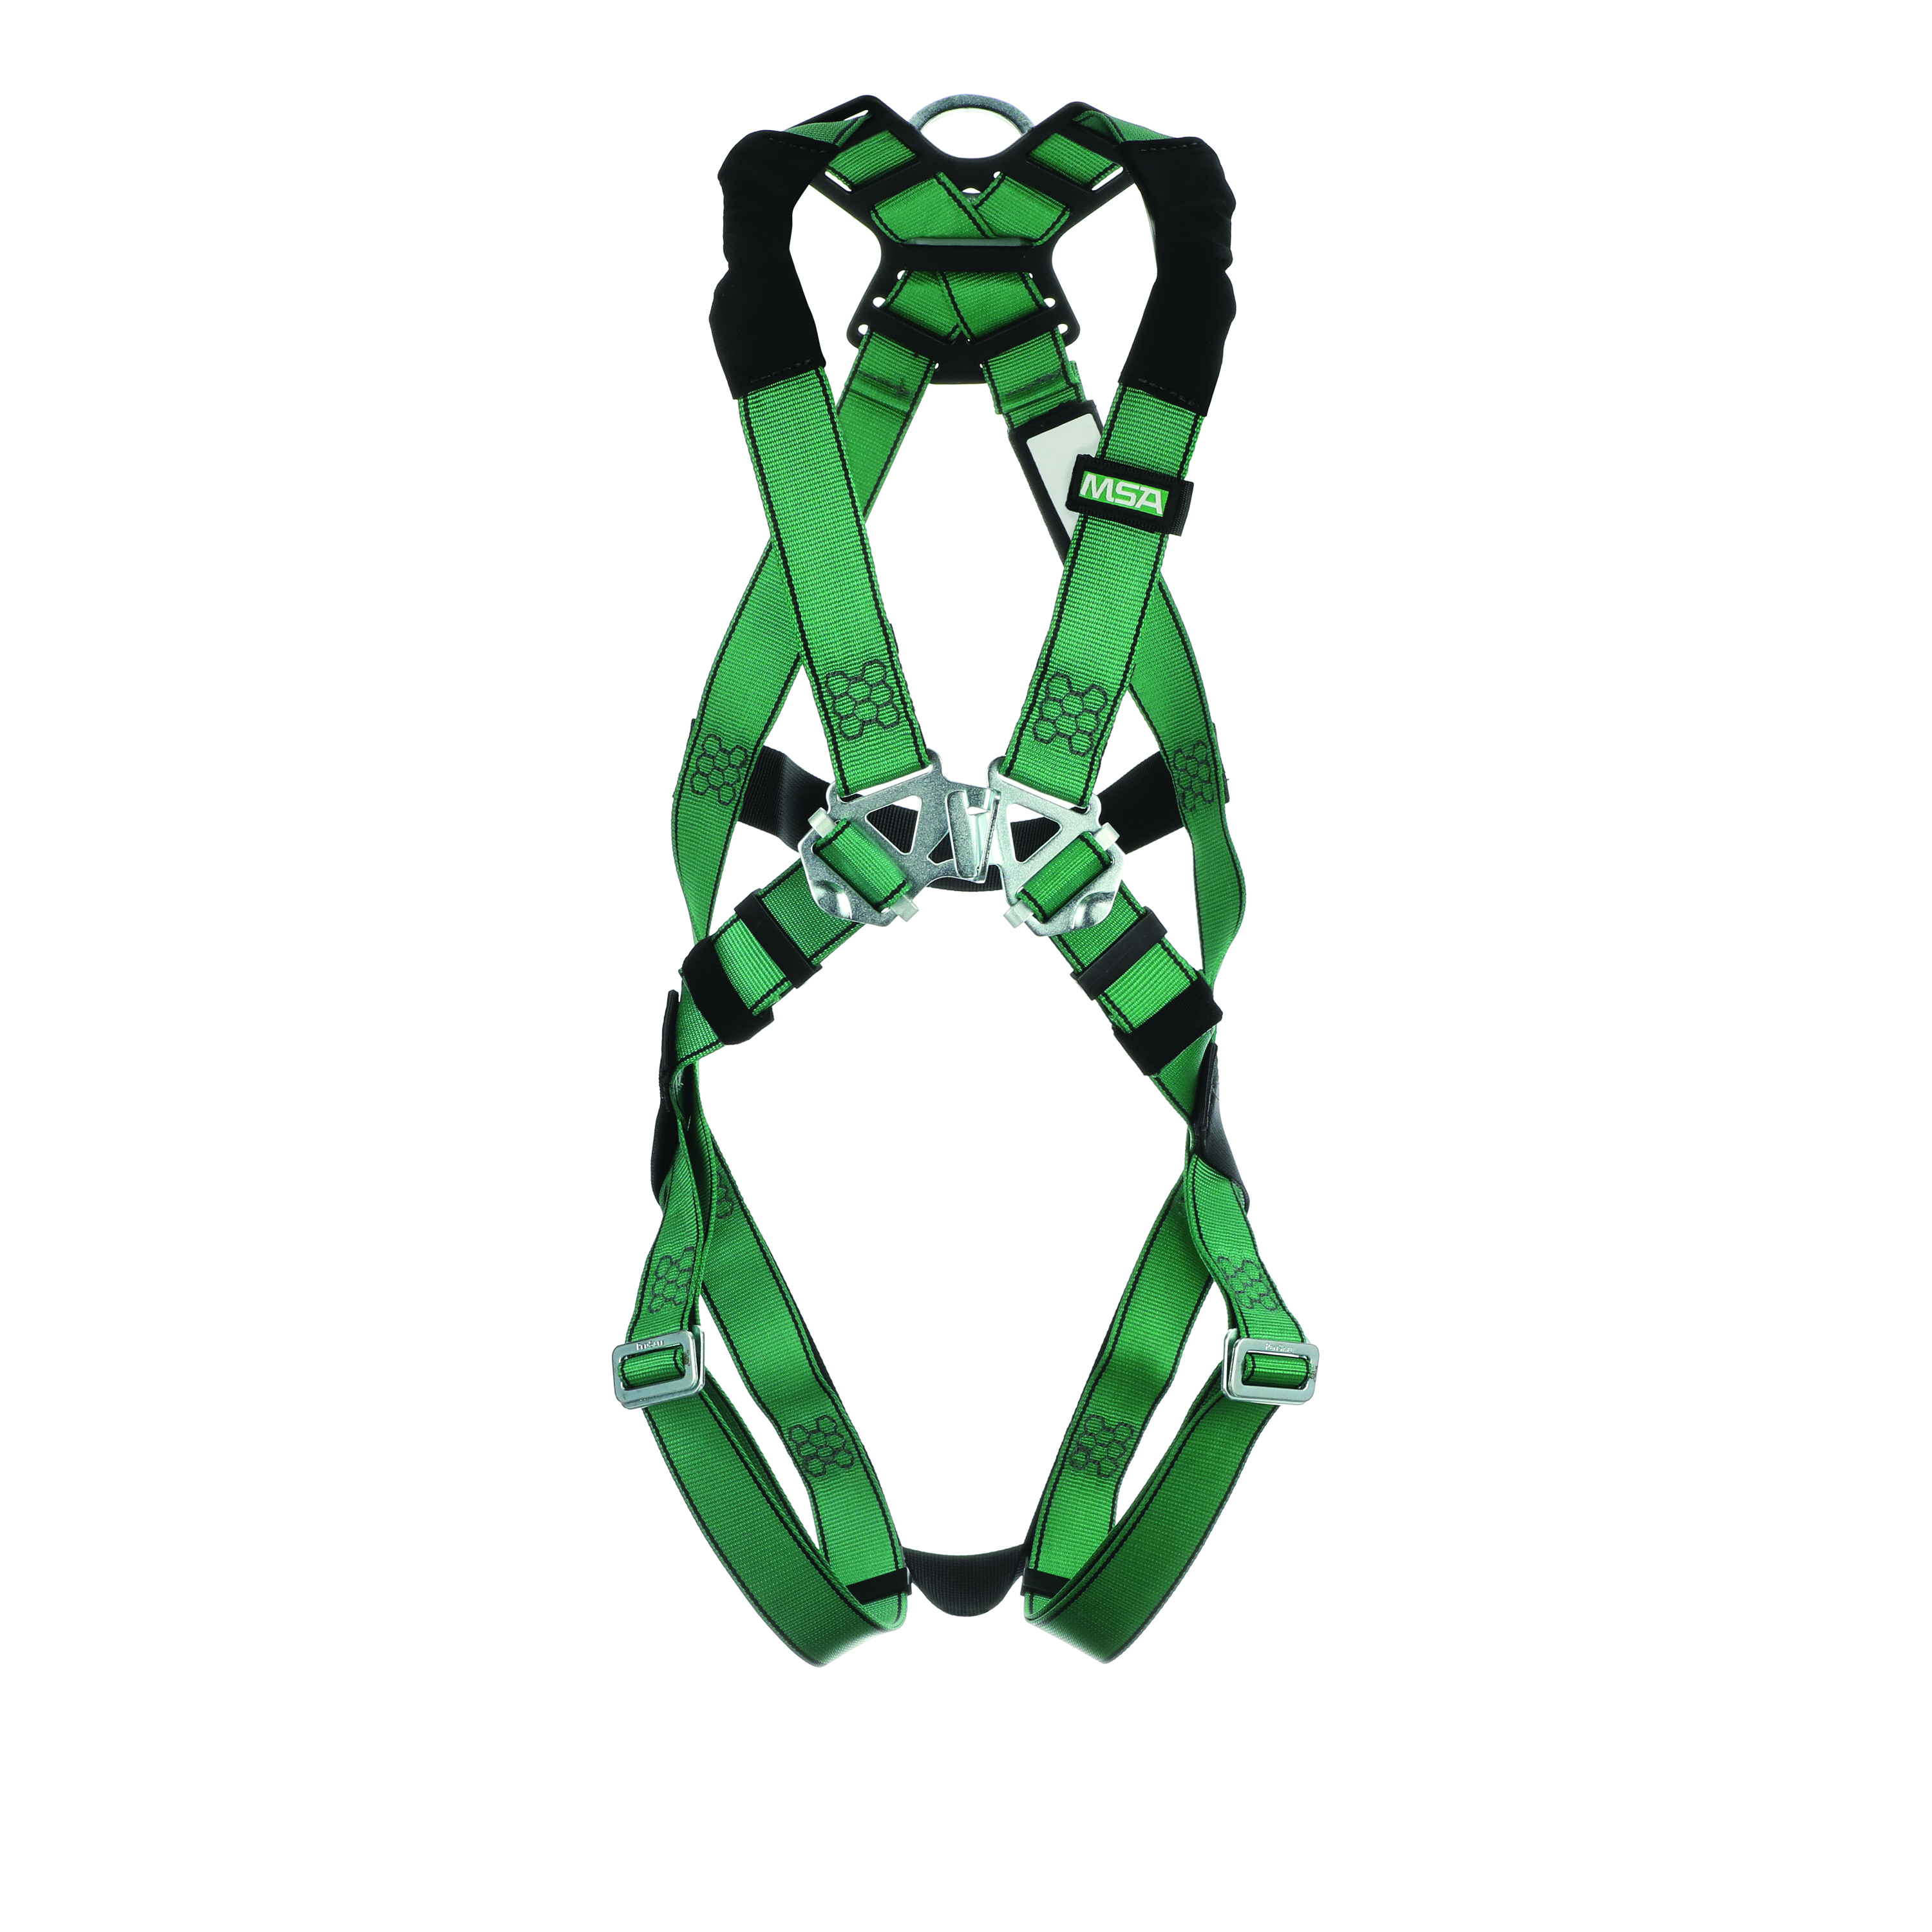 10197160 - V-FORM™ Safety Harness-V-FORM™ Safety Harness-Extra Large Size, Back D-Ring, Tongue Buckle Leg Straps ----UOM: 1/EA